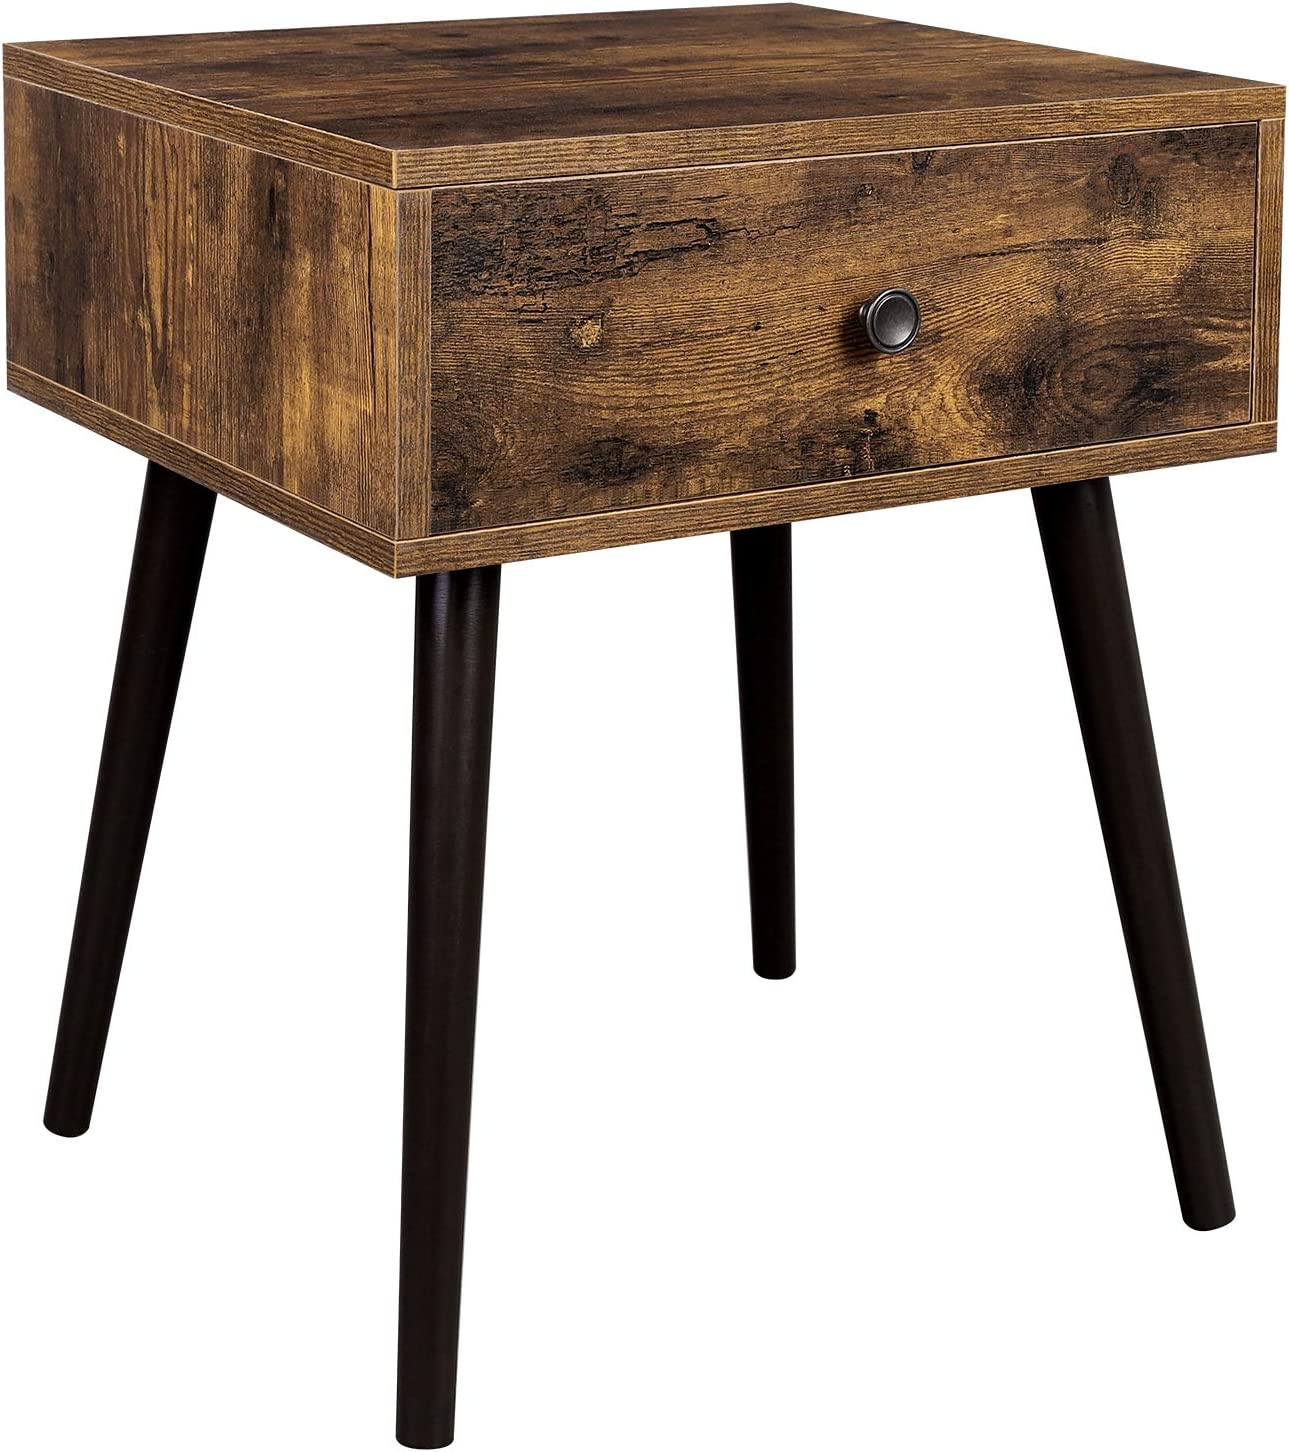 VASAGLE Nightstand, Sofa Side Table, End Table with a Drawer and Tapered Legs, Retro Style, for Bedroom, Living Room, Rustic Brown ULET176B01